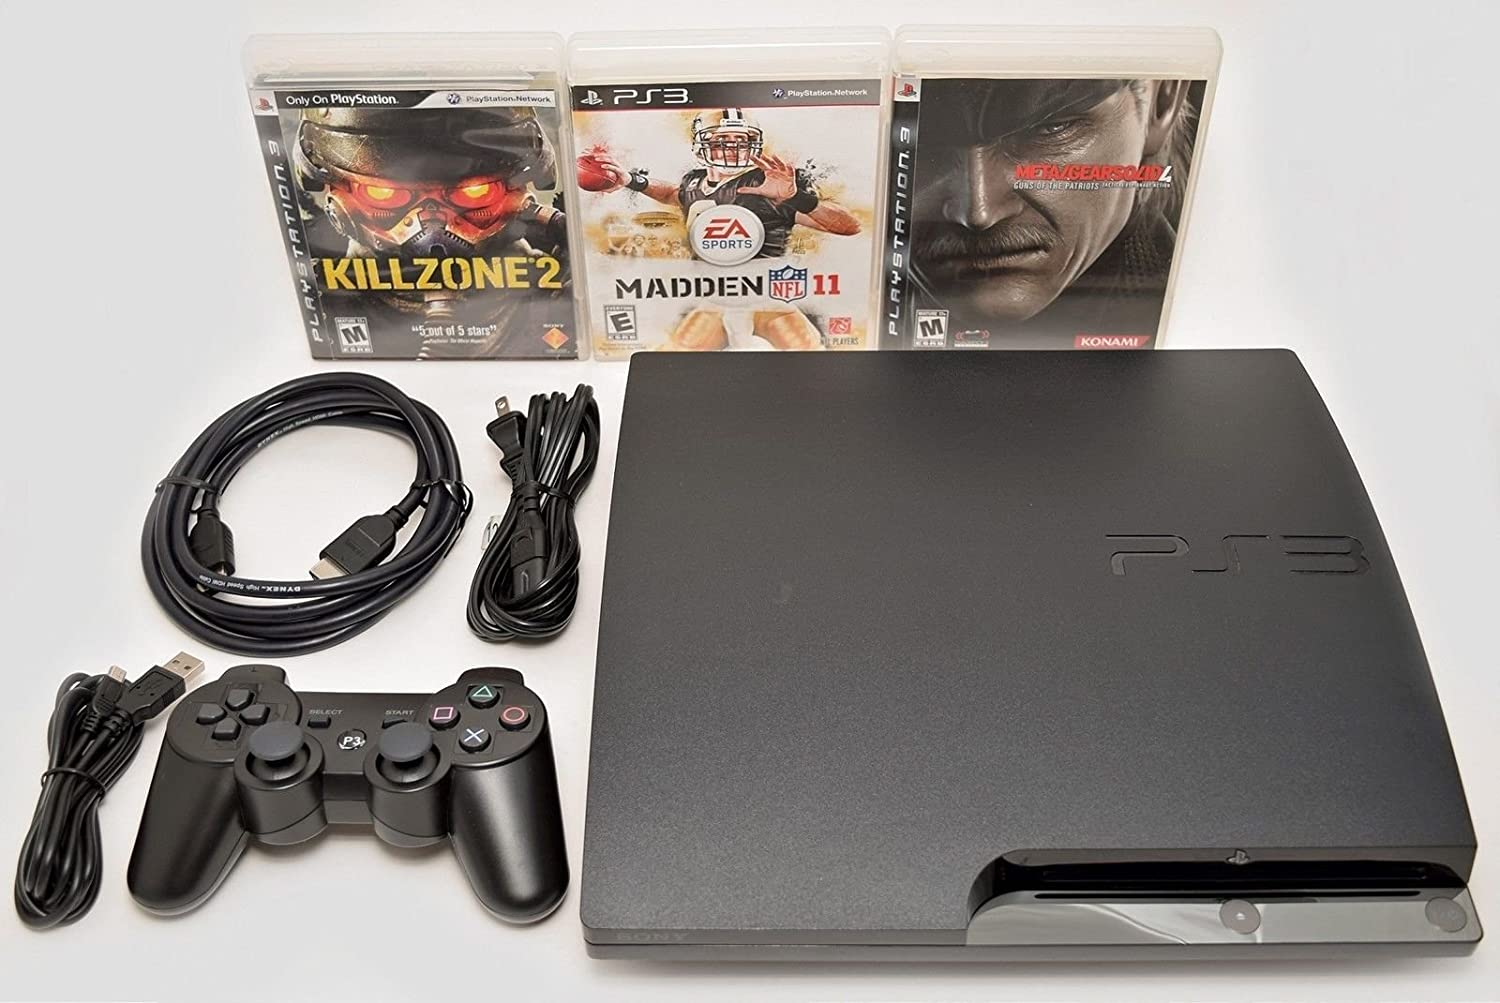 Sony Playstation 3 Slim 320gb Game Console System PS3 Bundle with 3 Games Madden Killzone 2 Metal Gear Solid 4